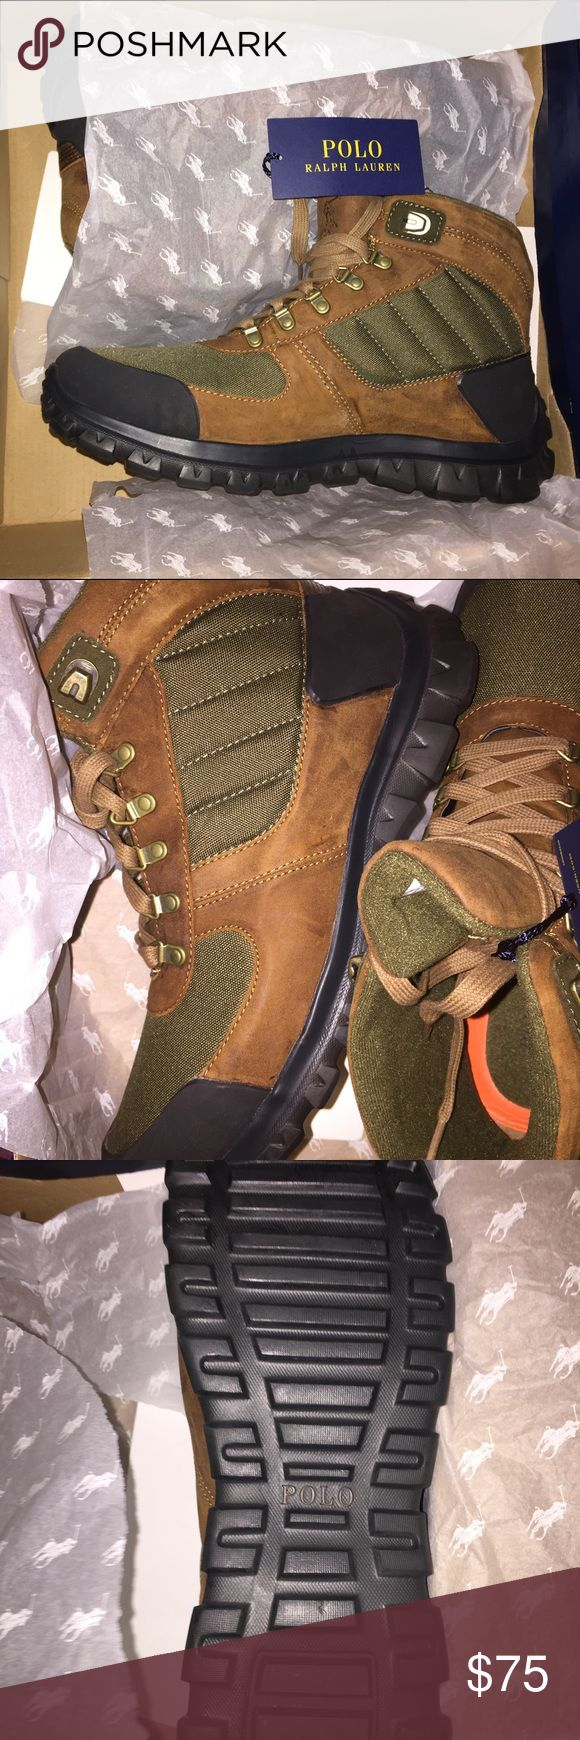 Men's New Ralph Lauren Polo Boots Bought Wrong Size . Never Worn And Come With Box Ralph Lauren Shoes Boots